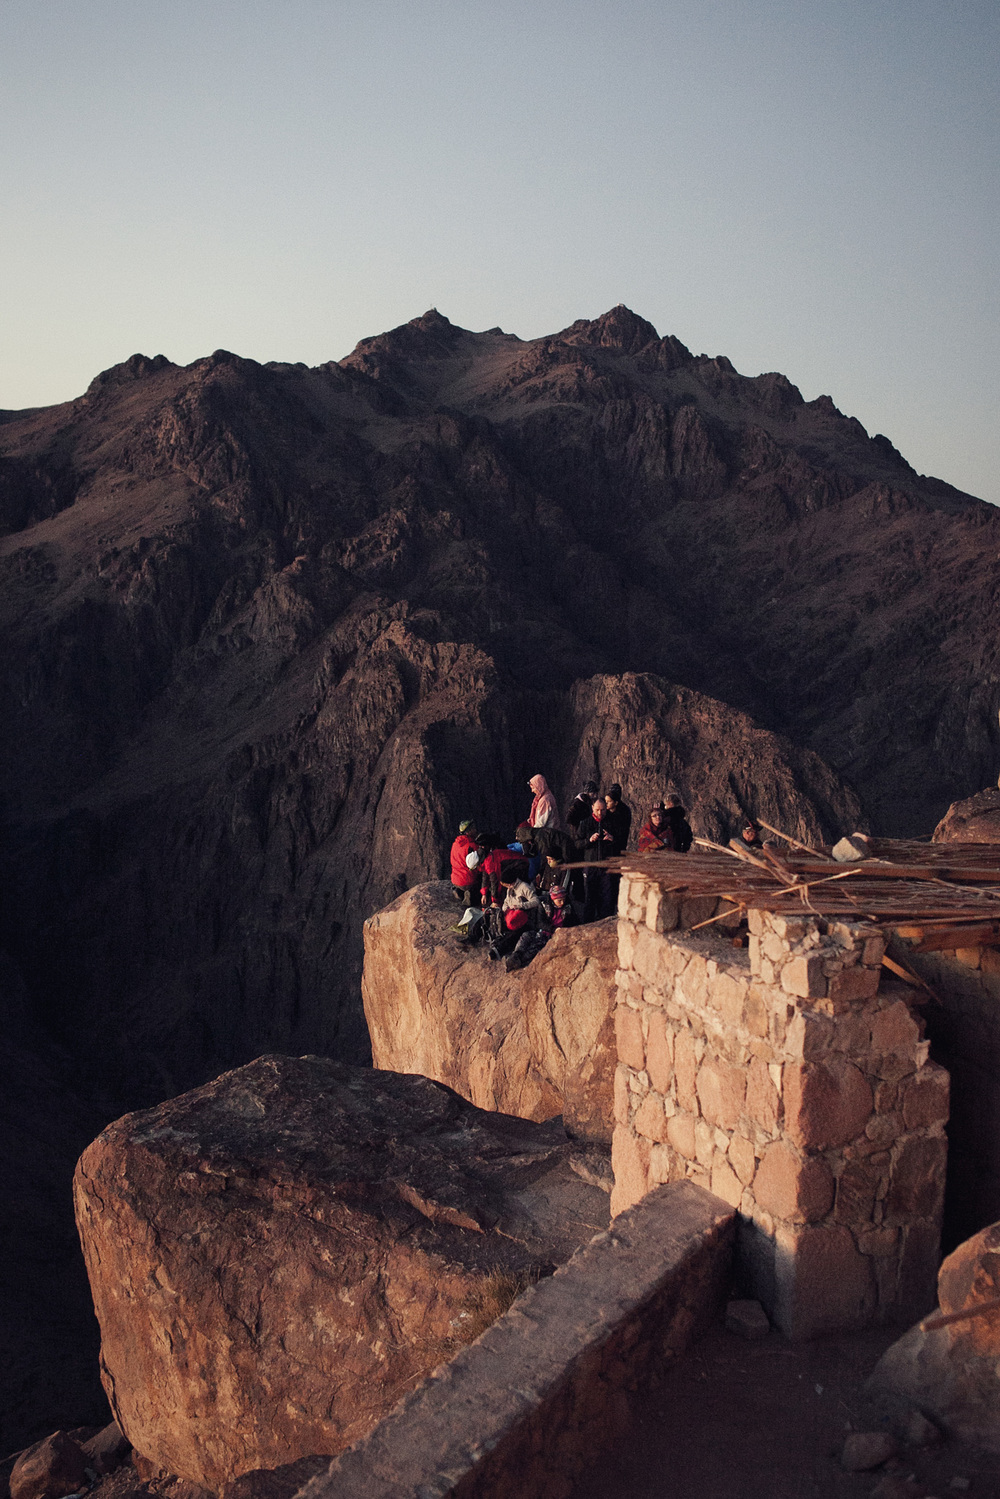 Tourists atop Mt Sinai witness the glory of the sunrise.